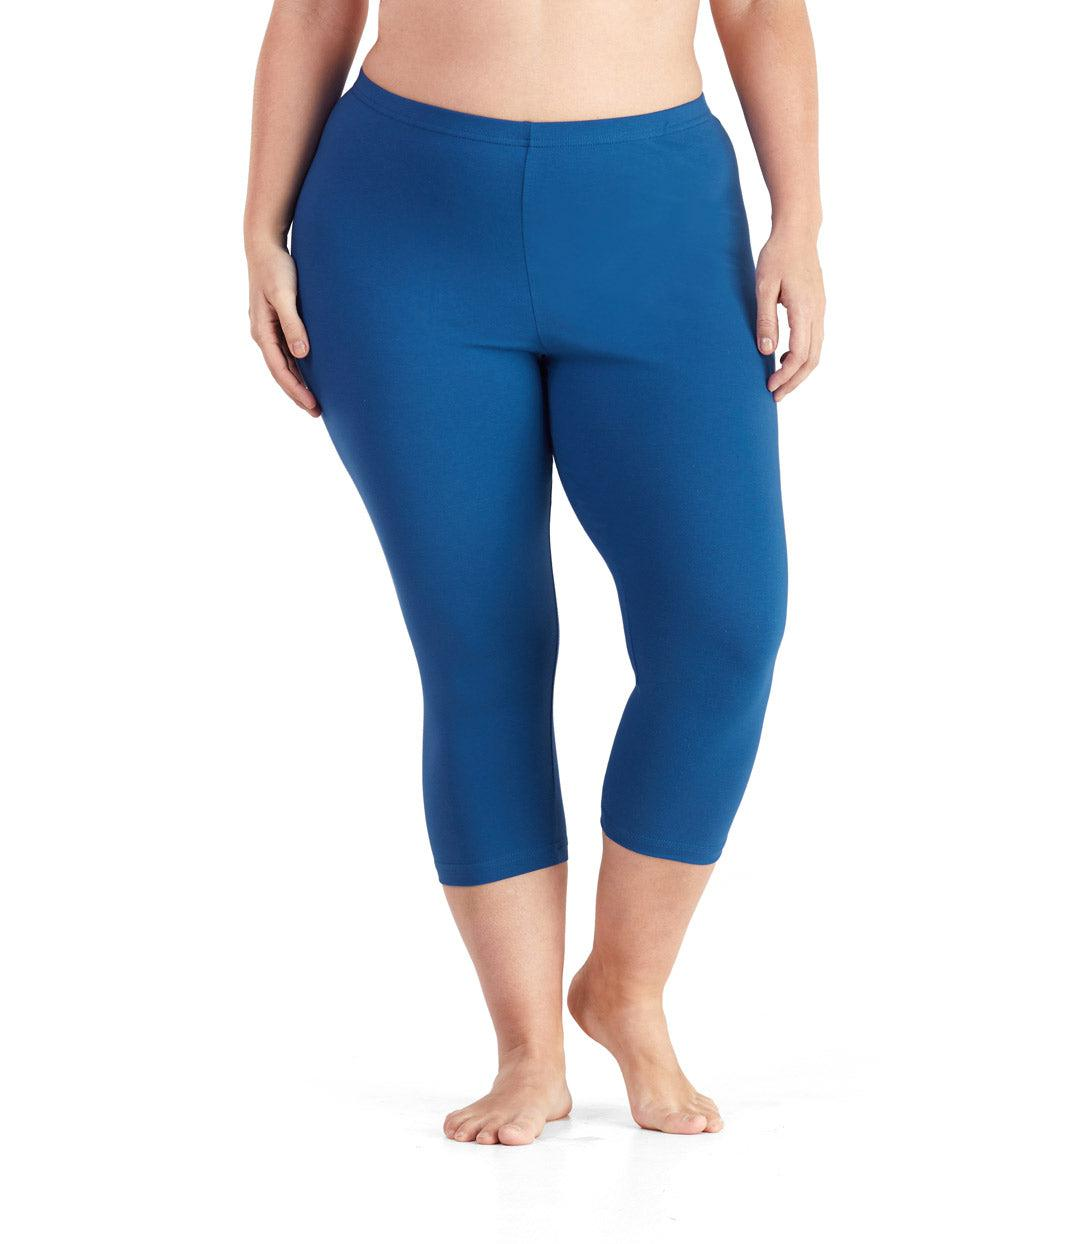 3c6eeec4ea883 Stretchy Workout Pants | Plus Size Exercise Capris | JunoActive